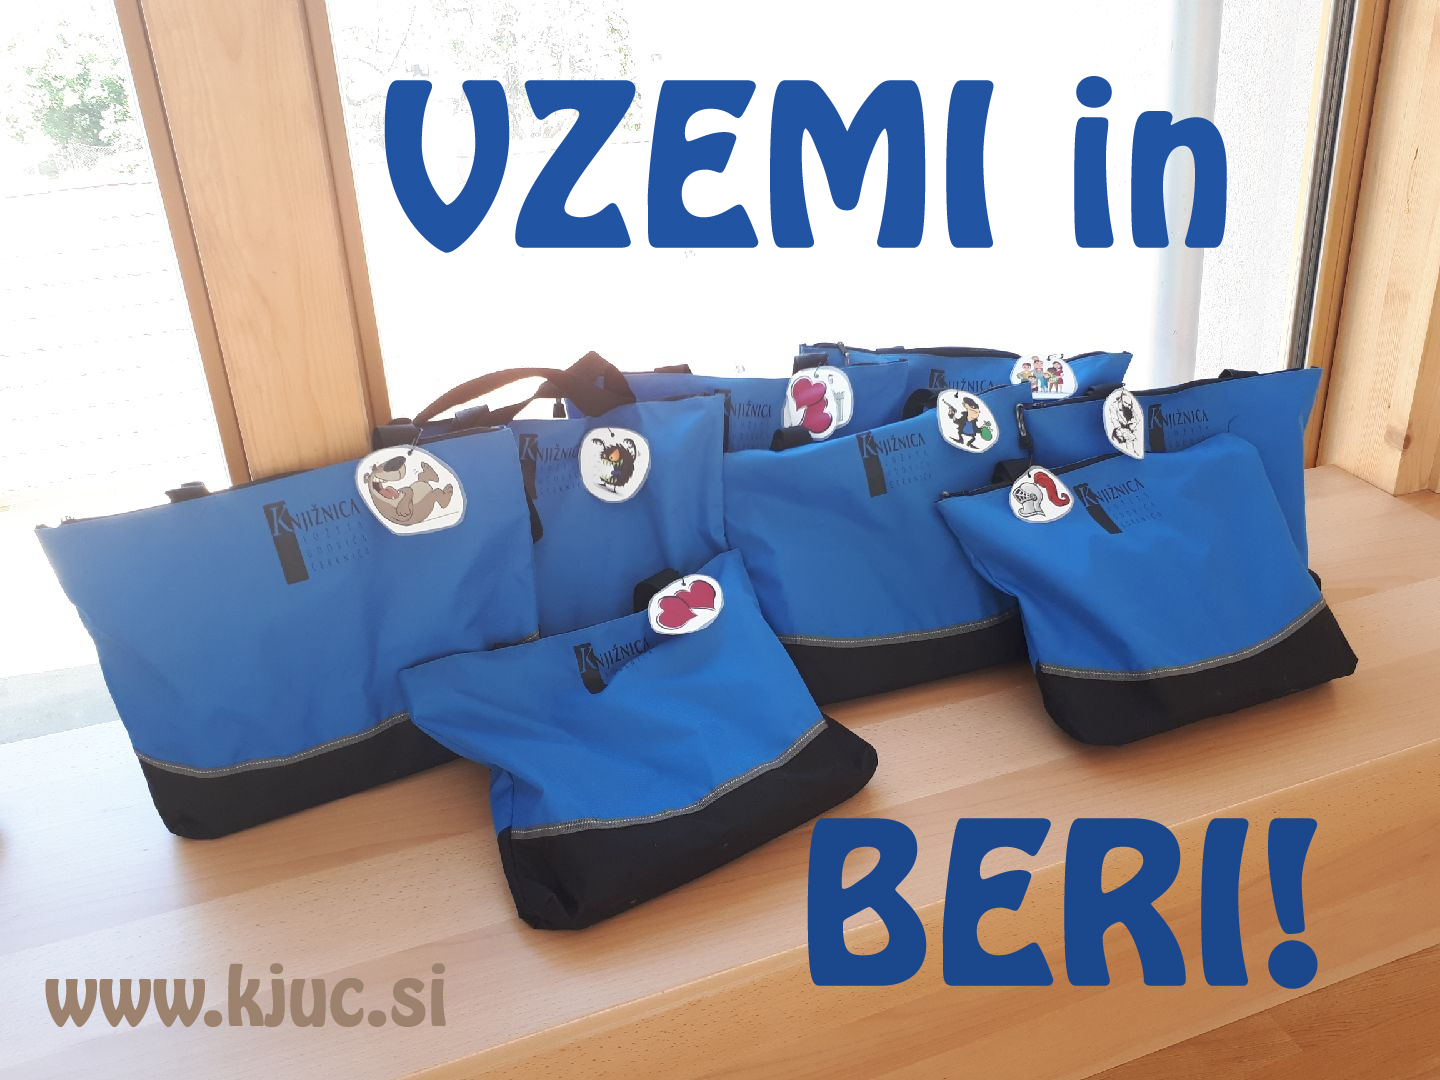 VZEMI IN BERI